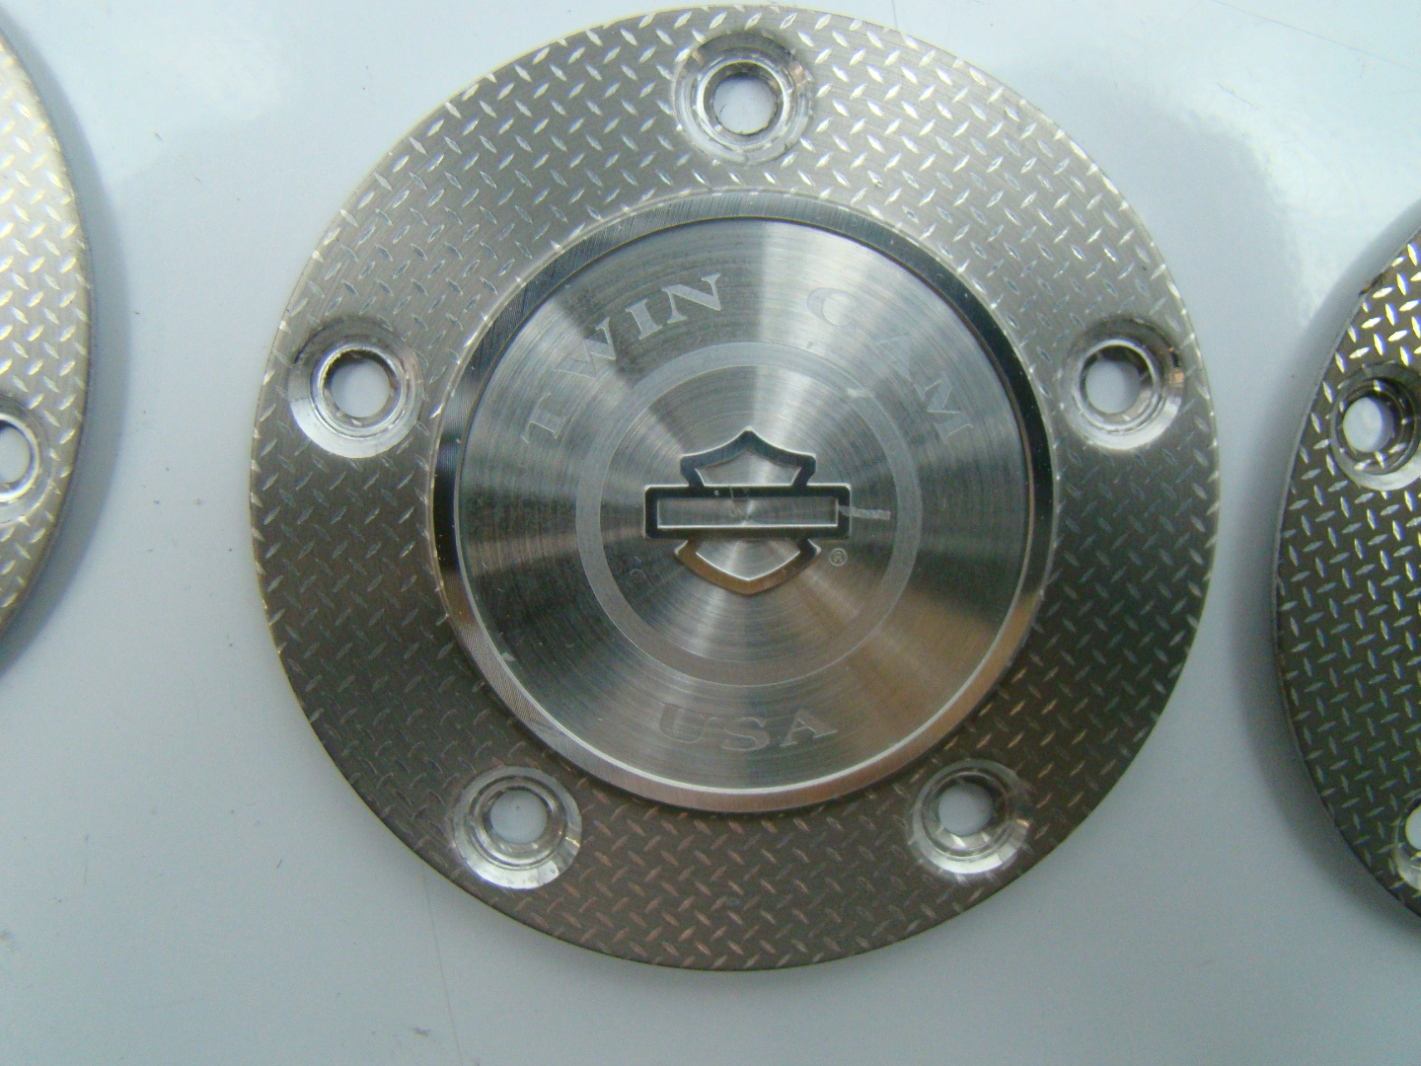 Harley Davidson Cover: Harley Davidson TIMER COVER, SILVER TWIN CAM 32543-07